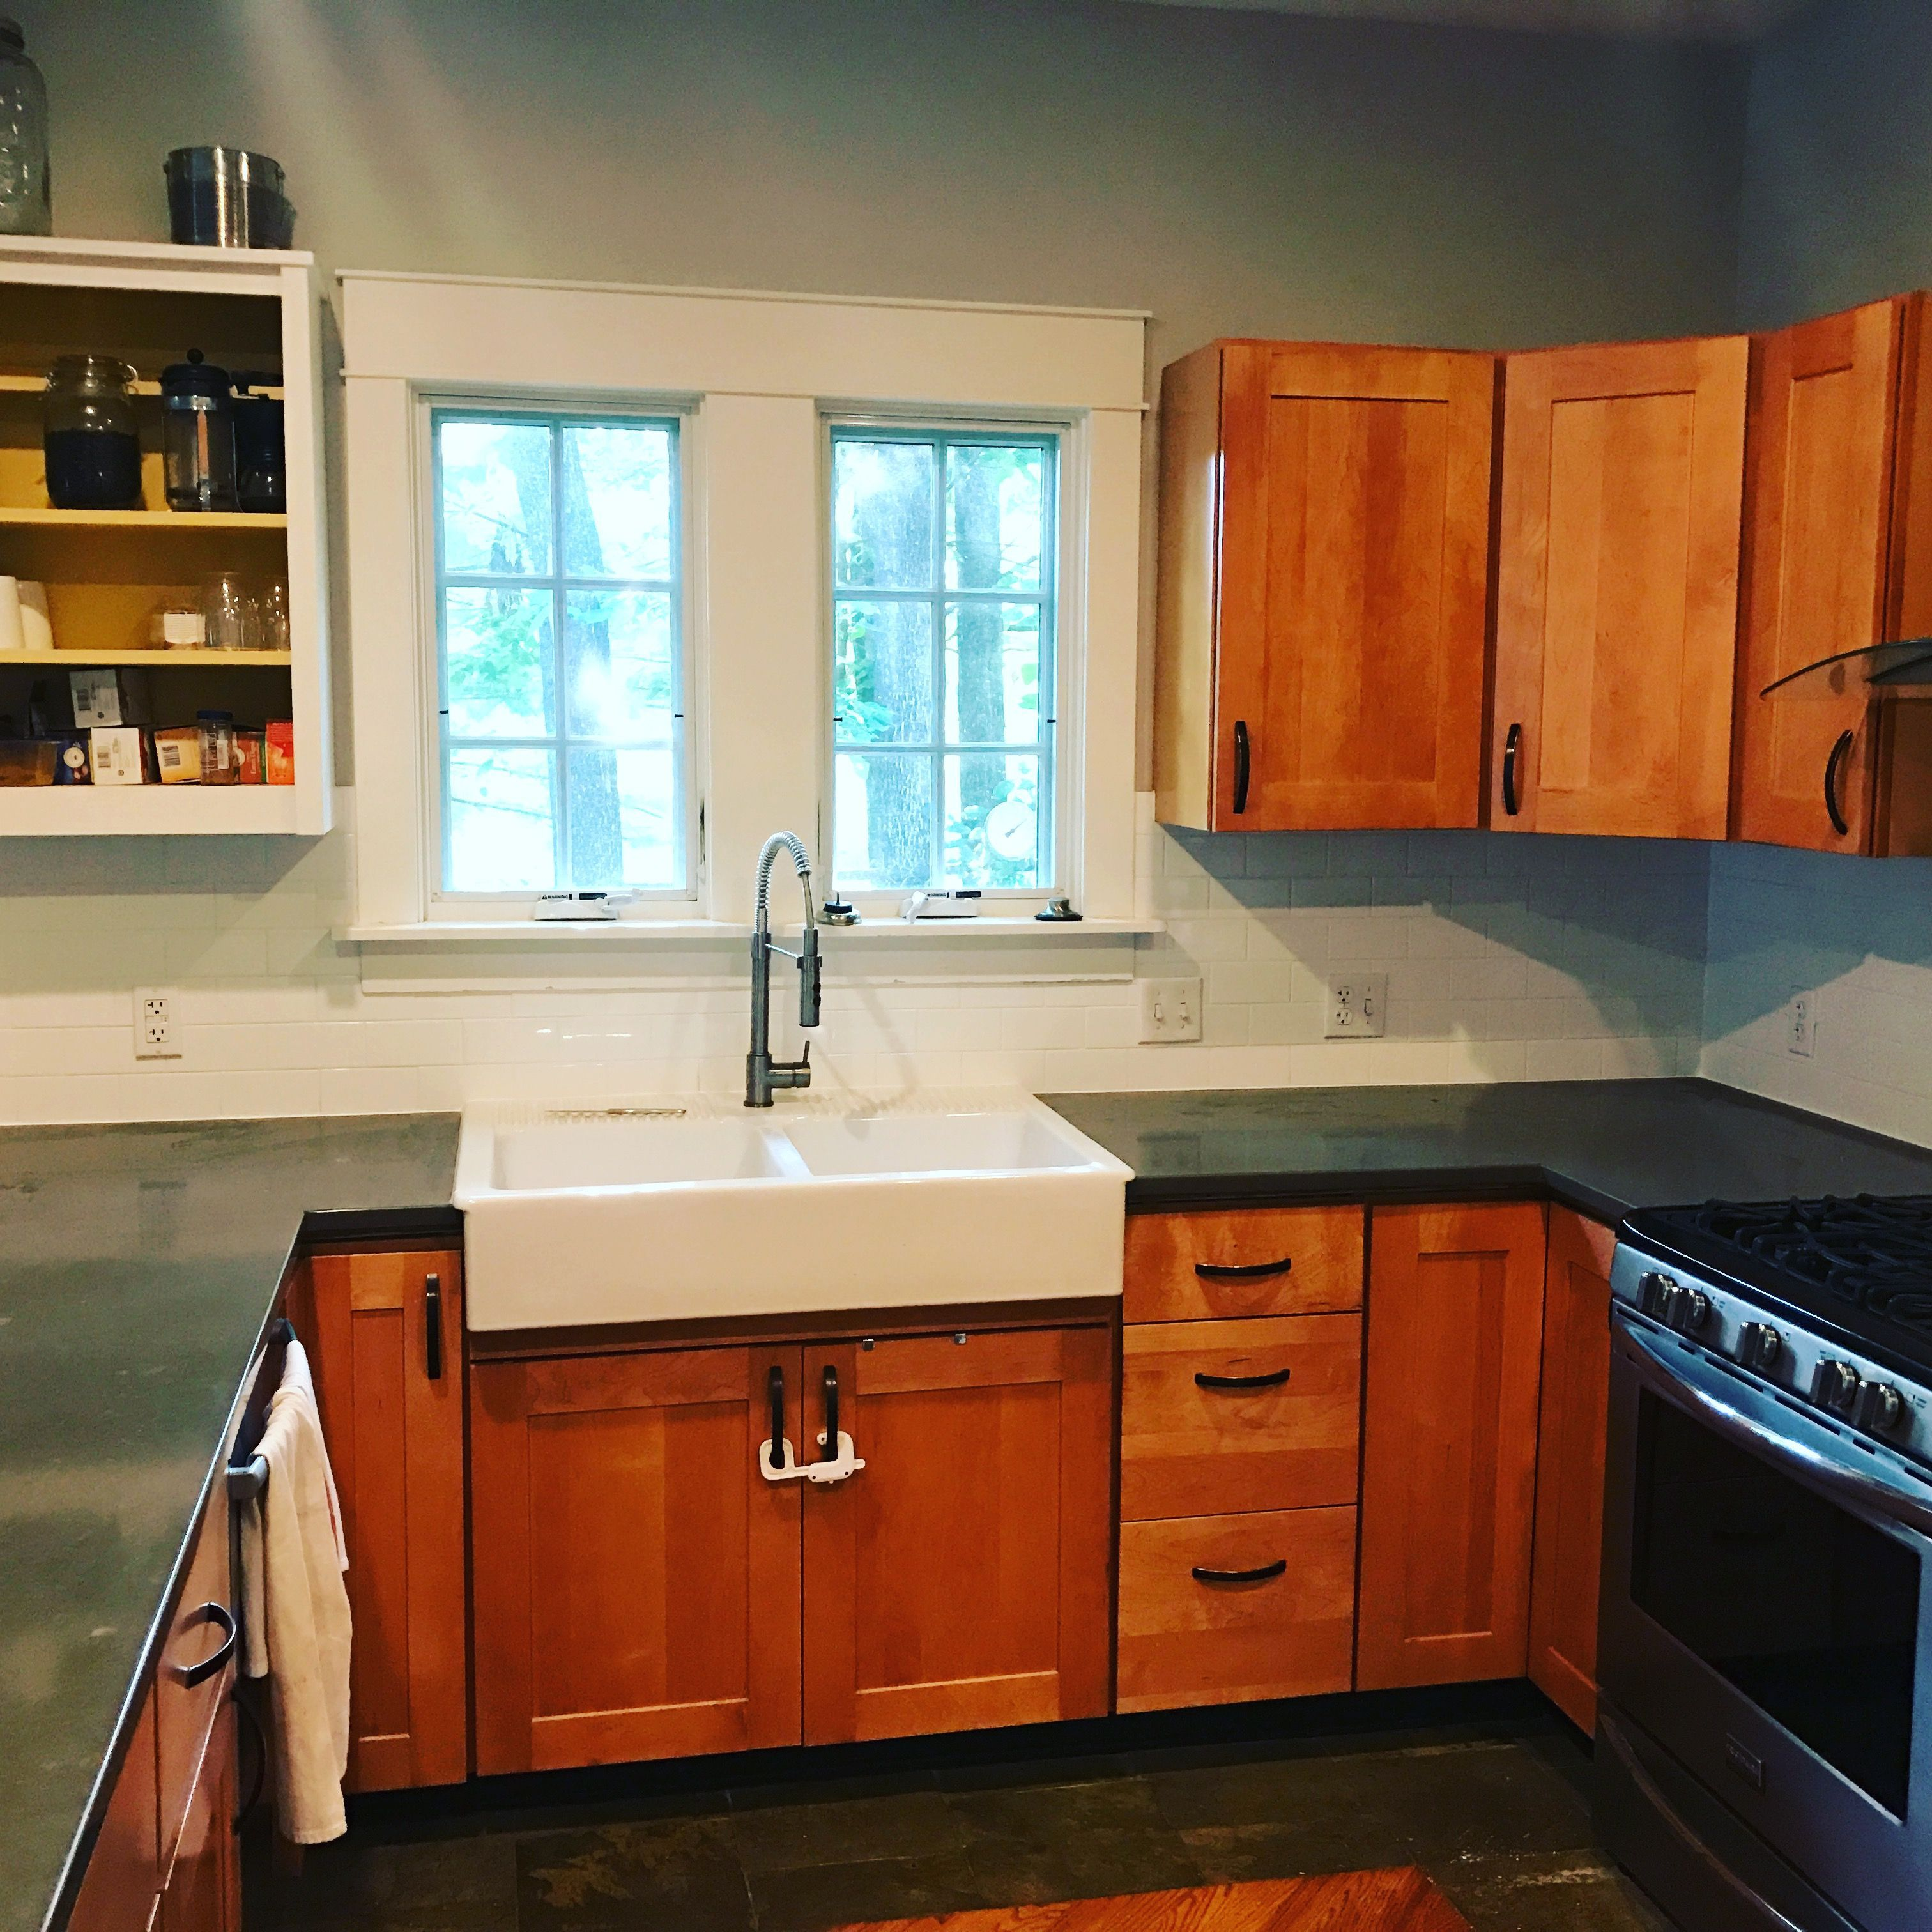 Image result for countertop with white sink maple cabinets ... on Maple Cabinets With White Countertops  id=38155